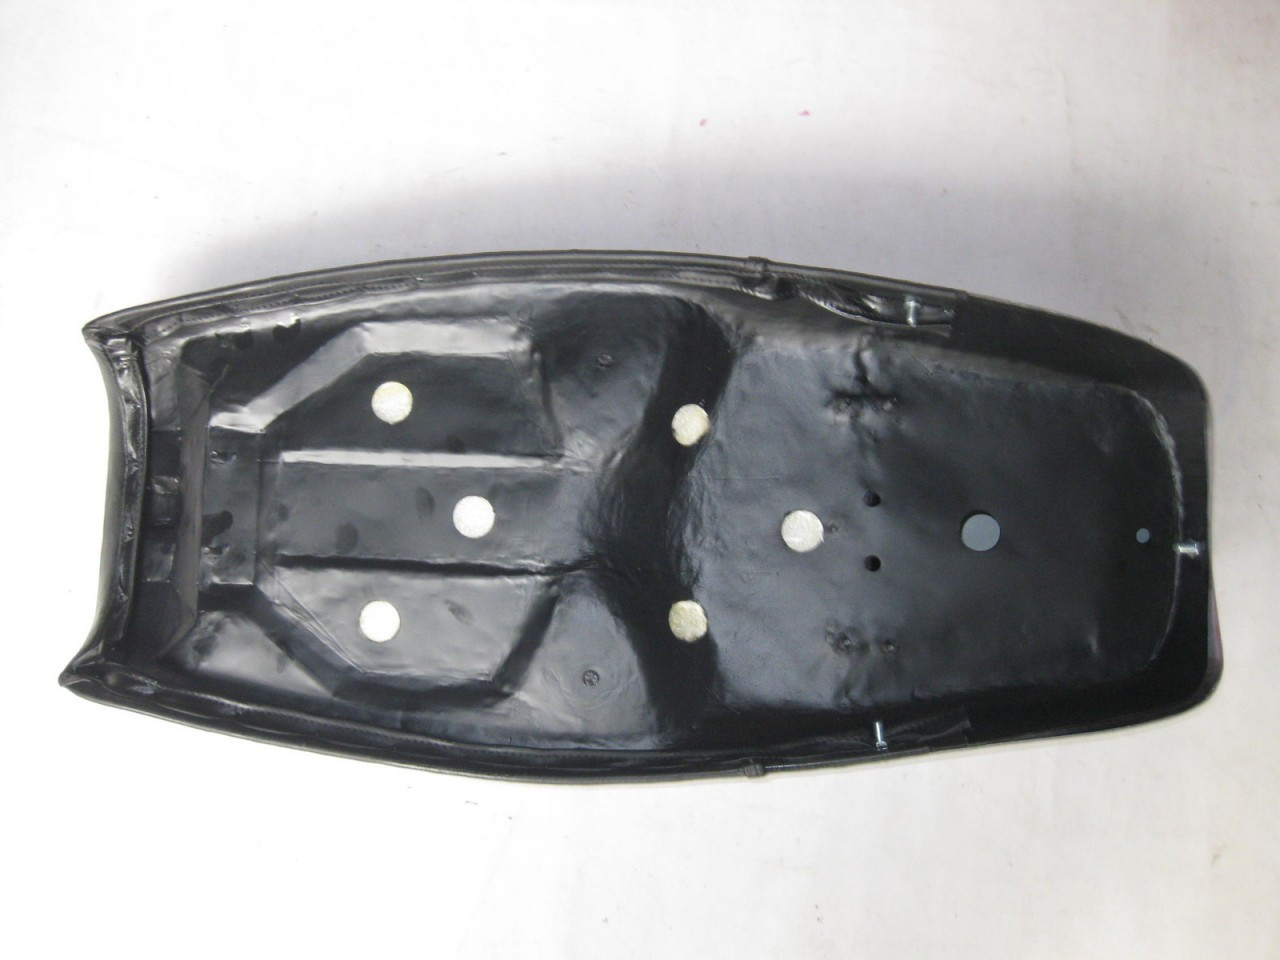 Honda CB400T HAWK CB400A CM400 Cafe Racer Motorcycle Seat with modified seat pan metal cowl #3051